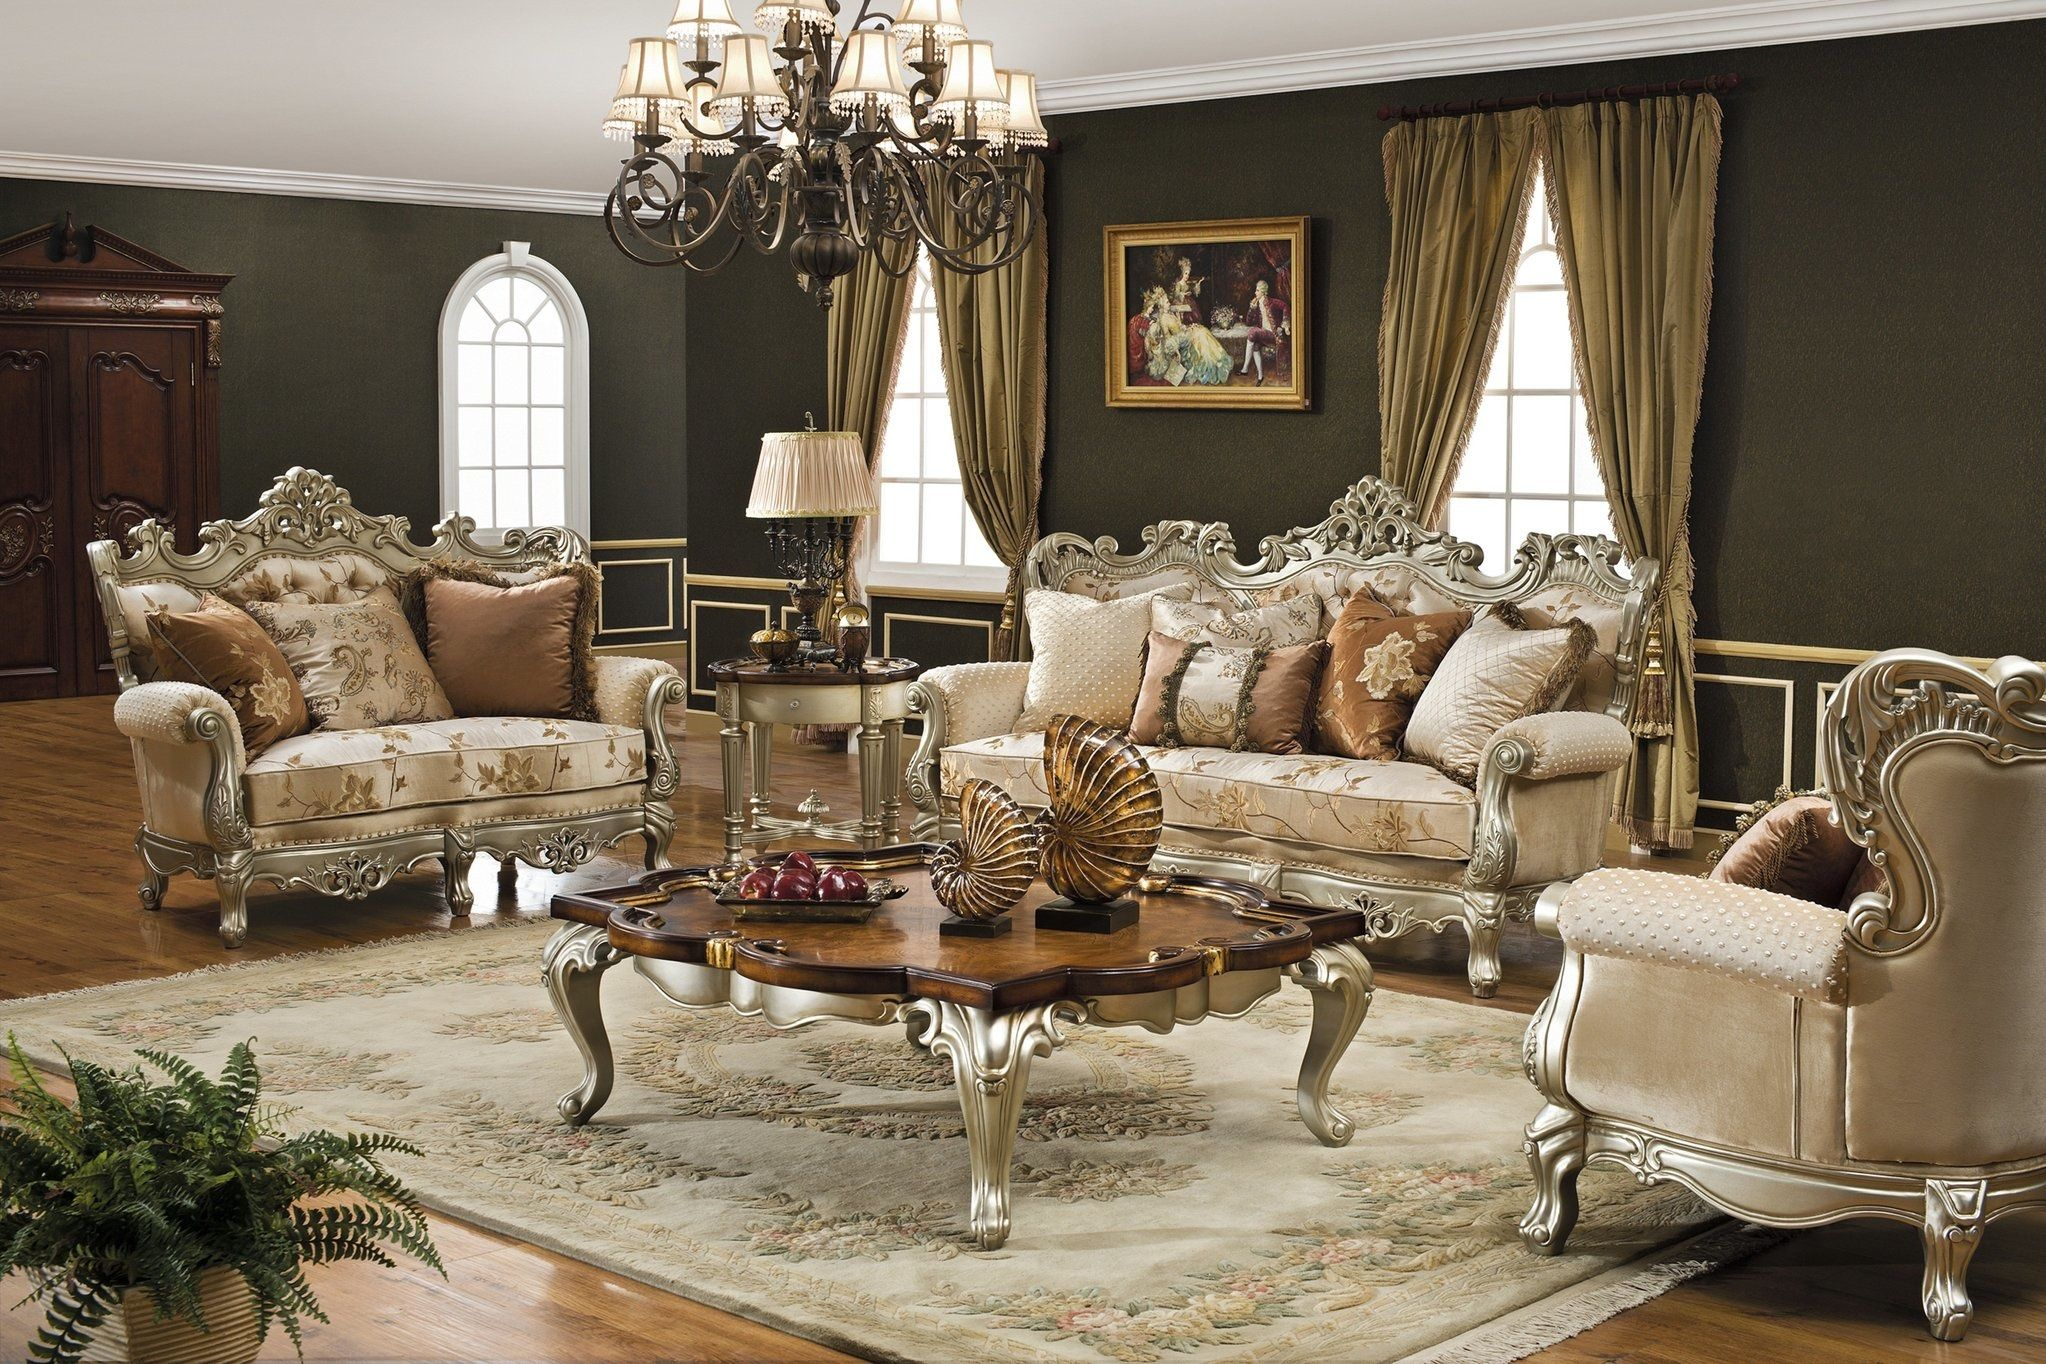 Italian Crafted Wooden Sofa Sets Designs 2017 Find here some most. Italian Crafted Wooden Sofa Sets Designs 2017 Find here some most